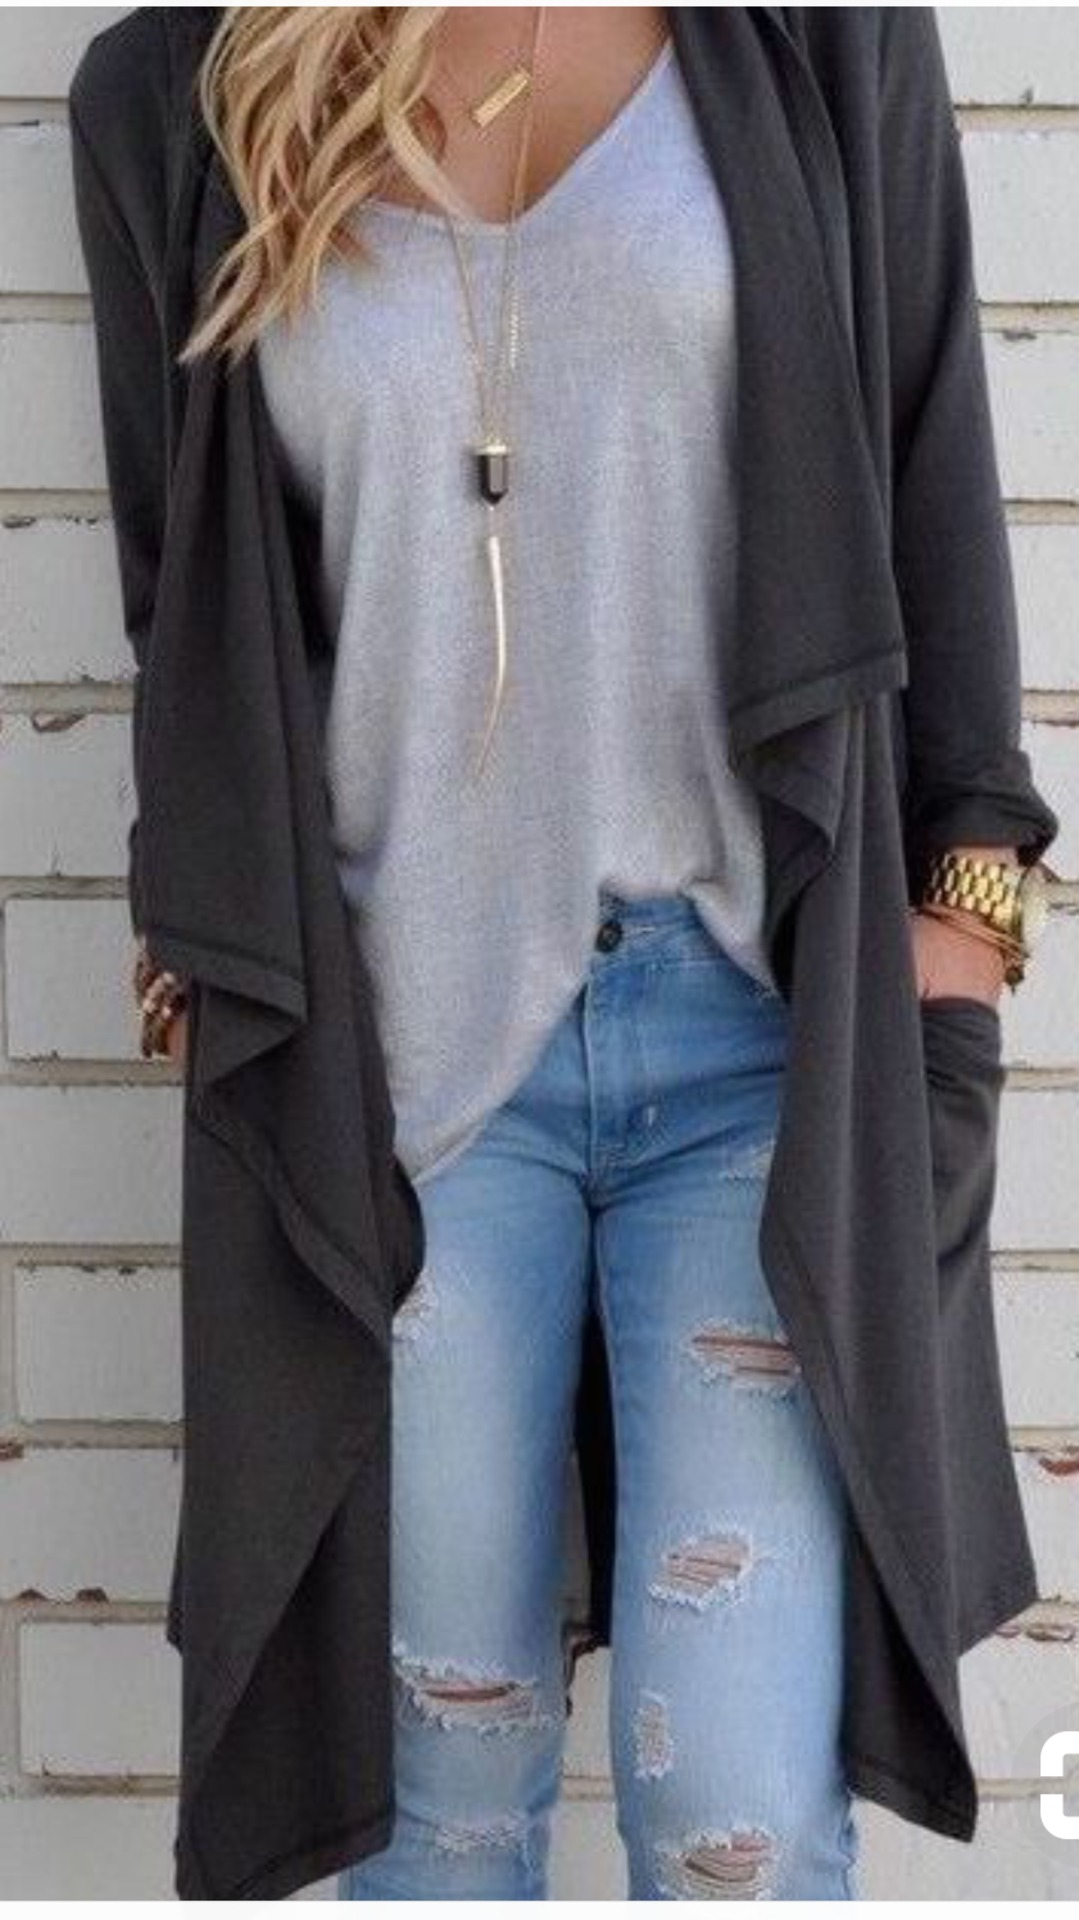 HOW TO WEAR OVERSIZED TOPS? image